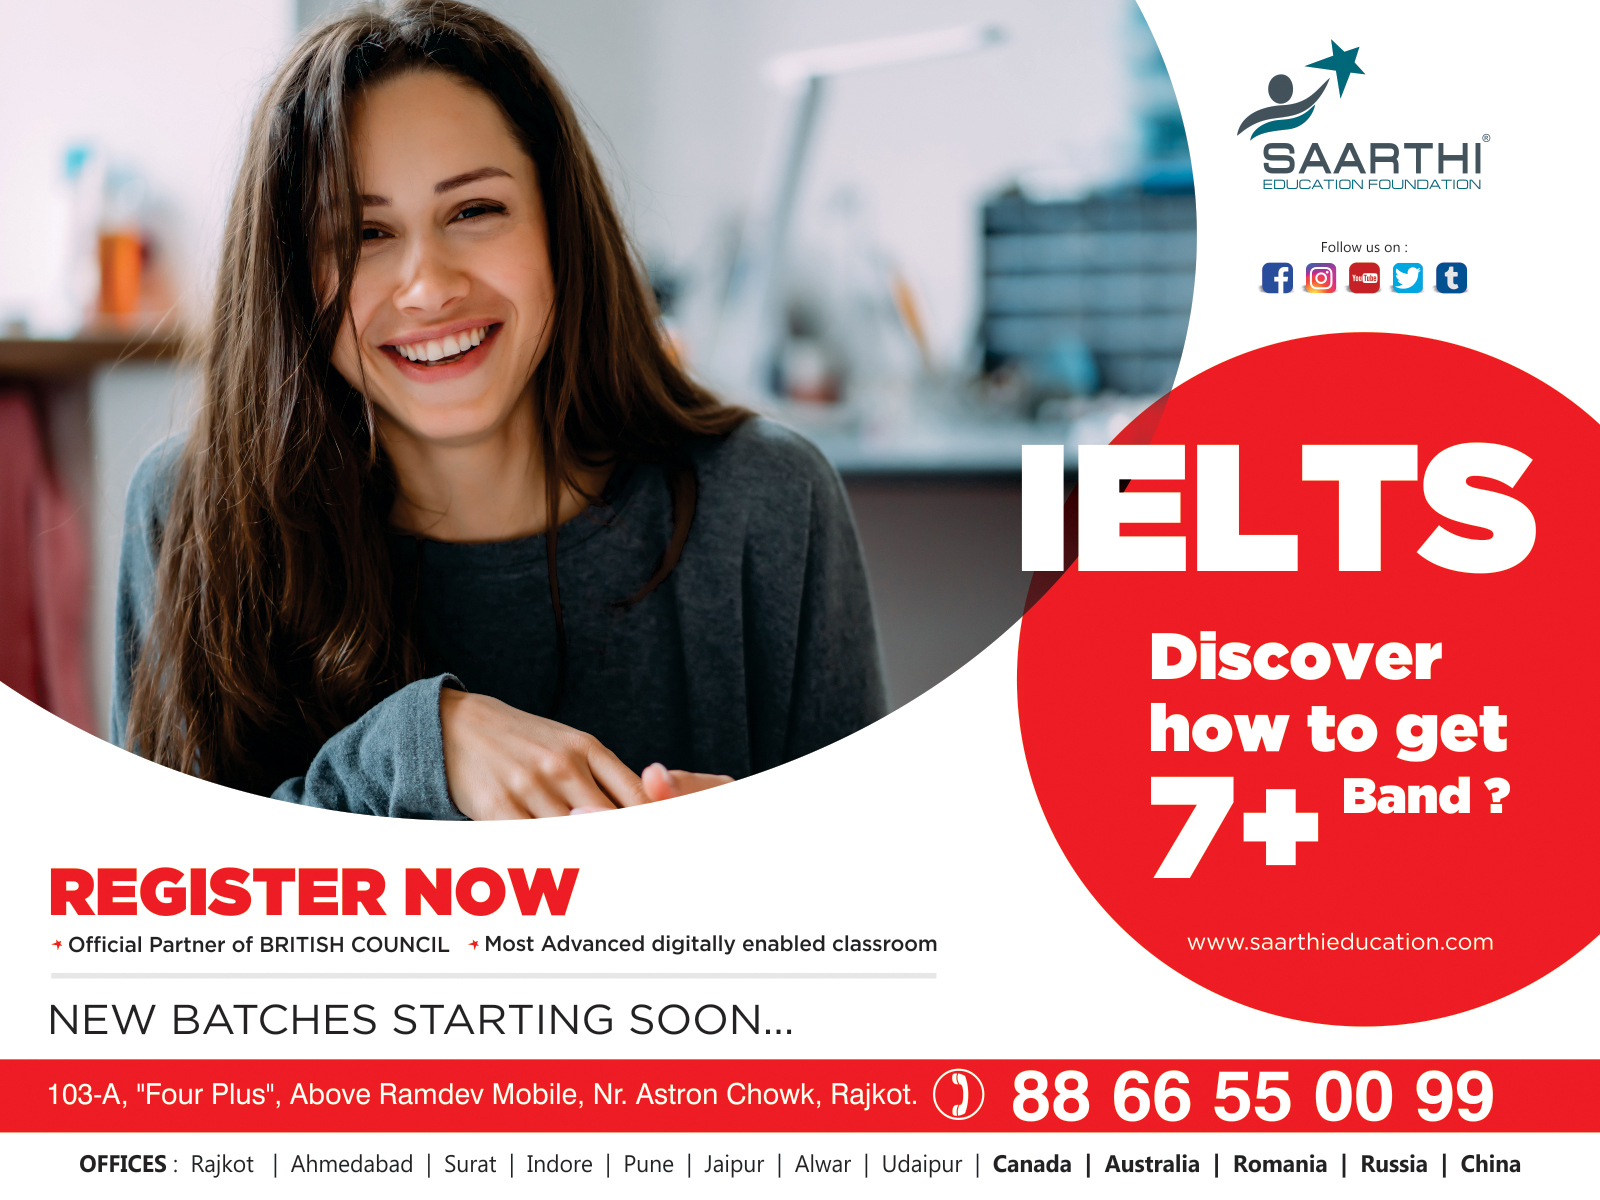 IELTS New Batches Starting Soon